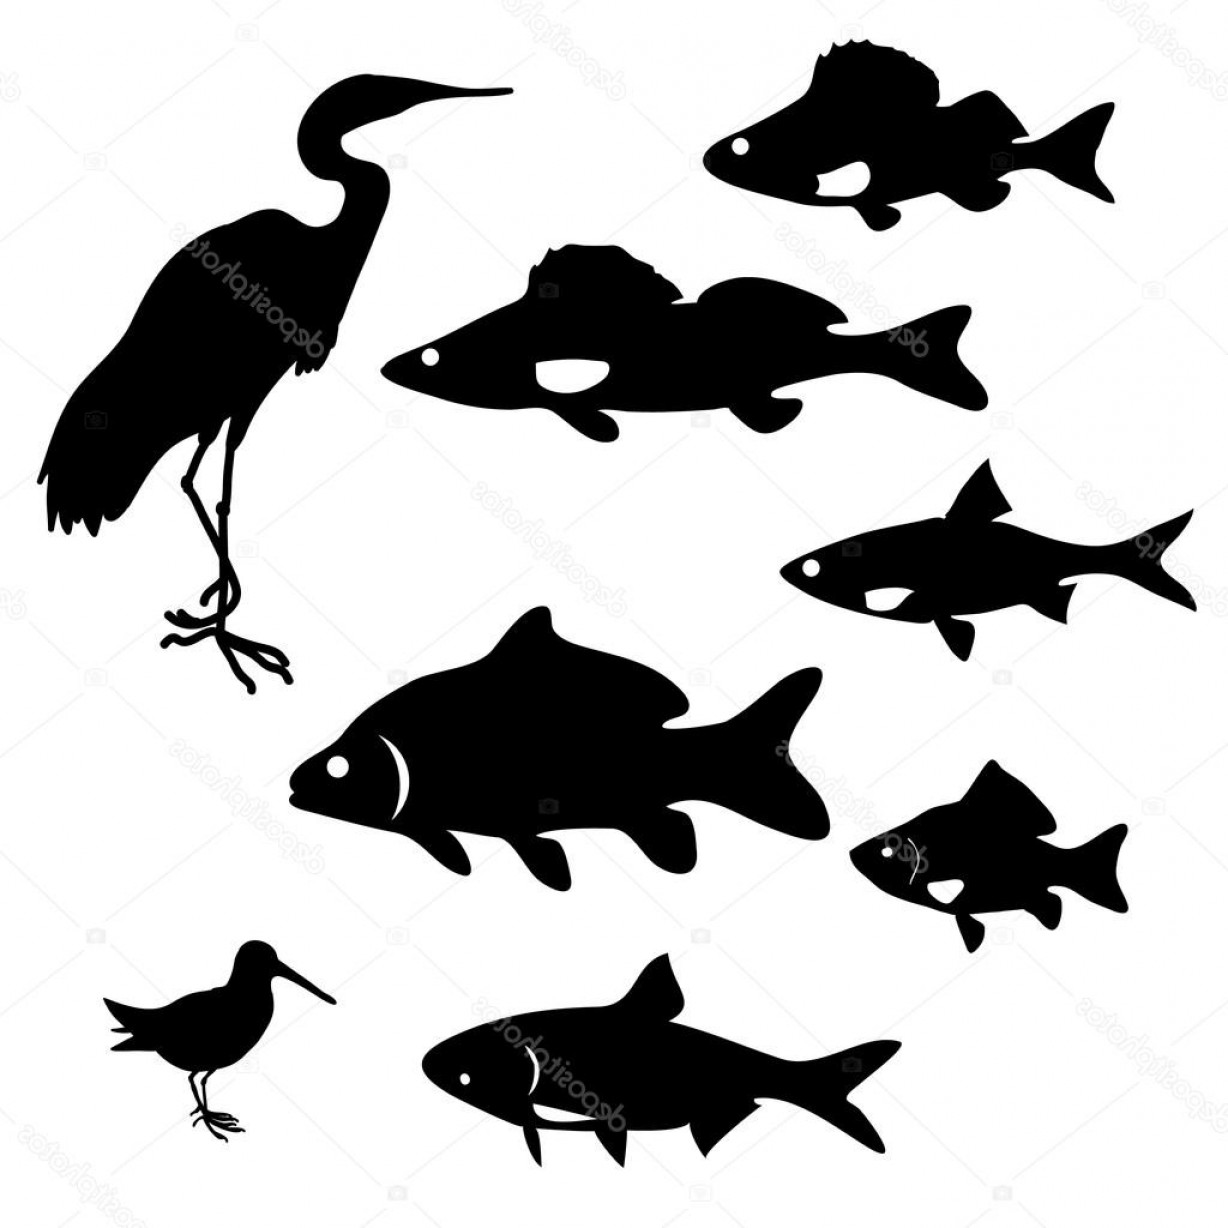 River Silhouette Vector Art: Stock Illustration Silhouettes Of River Fish